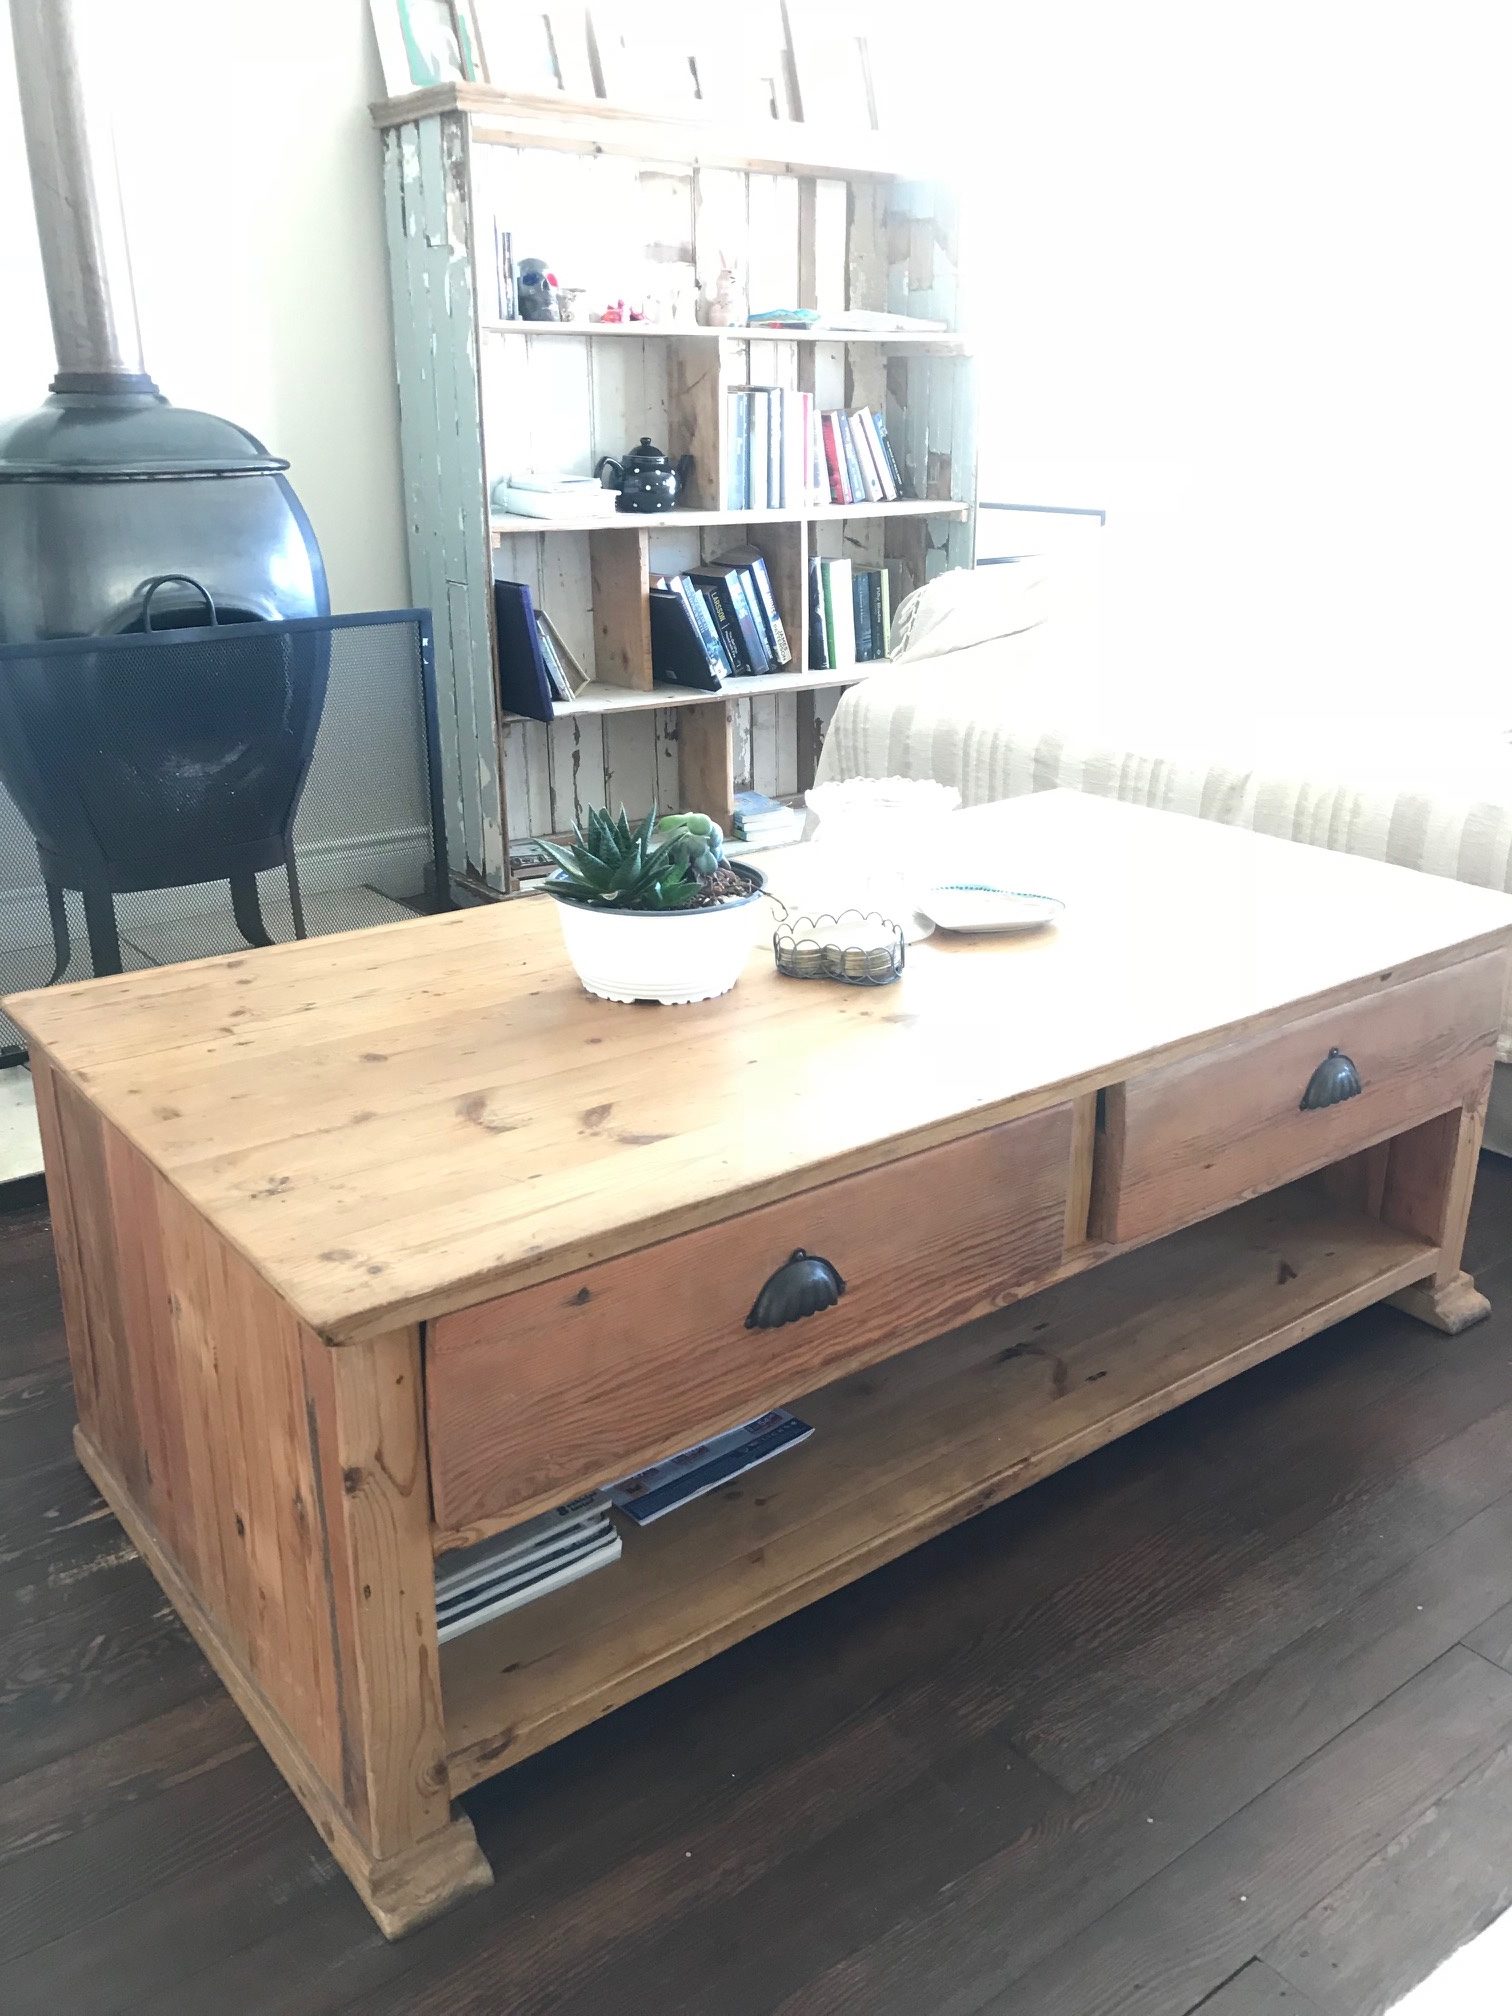 Coffee table recycled